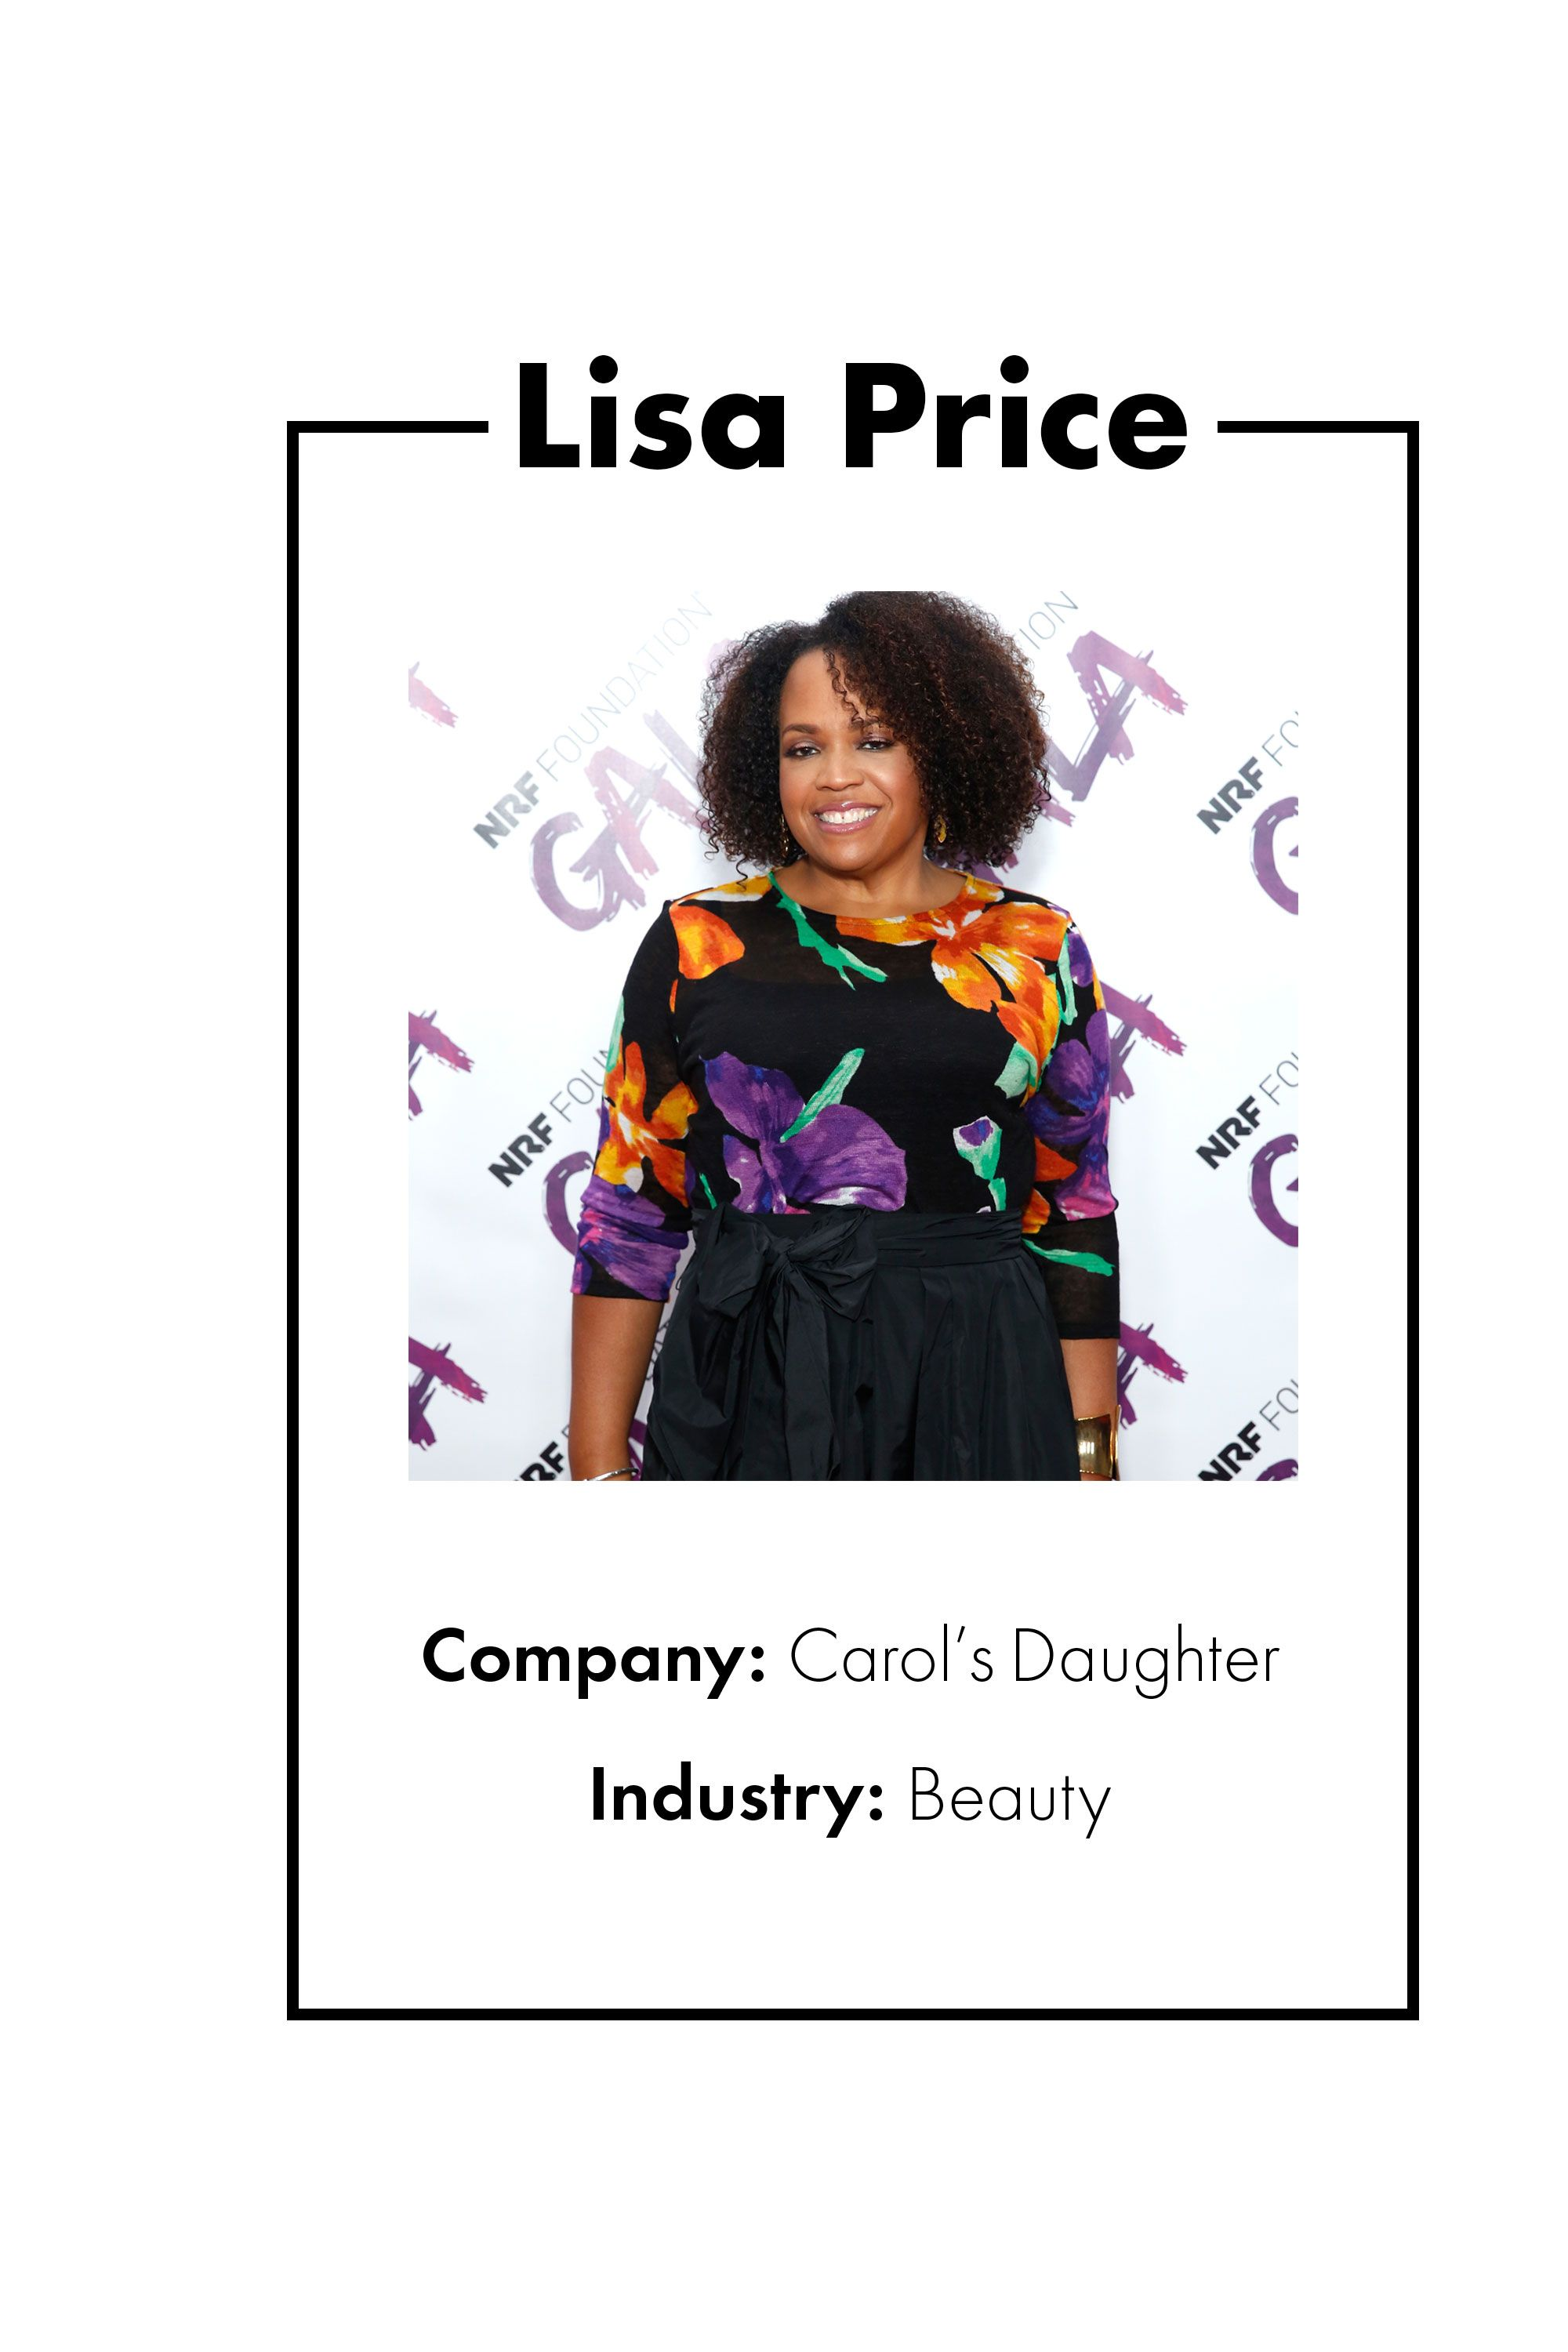 "<p>Lisa Price's homespun creation of beauty line <a href=""http://www.carolsdaughter.com/"" target=""_blank"" data-tracking-id=""recirc-text-link"">Carol's Daughter</a> is a famous story: While working in television, Price launched the line in 1993 out of her Brooklyn kitchen as a hobby, initially selling skin creams and hair products at craft fairs and flea markets. The brand, named for Price's mother, has grown exponentially since then and become a multi-million dollar empire. In 2014, L'Oreal USA bought Carol's Daughter, proving that if you put your passion and love into an endeavor it will eventually pay off big time–and not just monetarily. </p>"